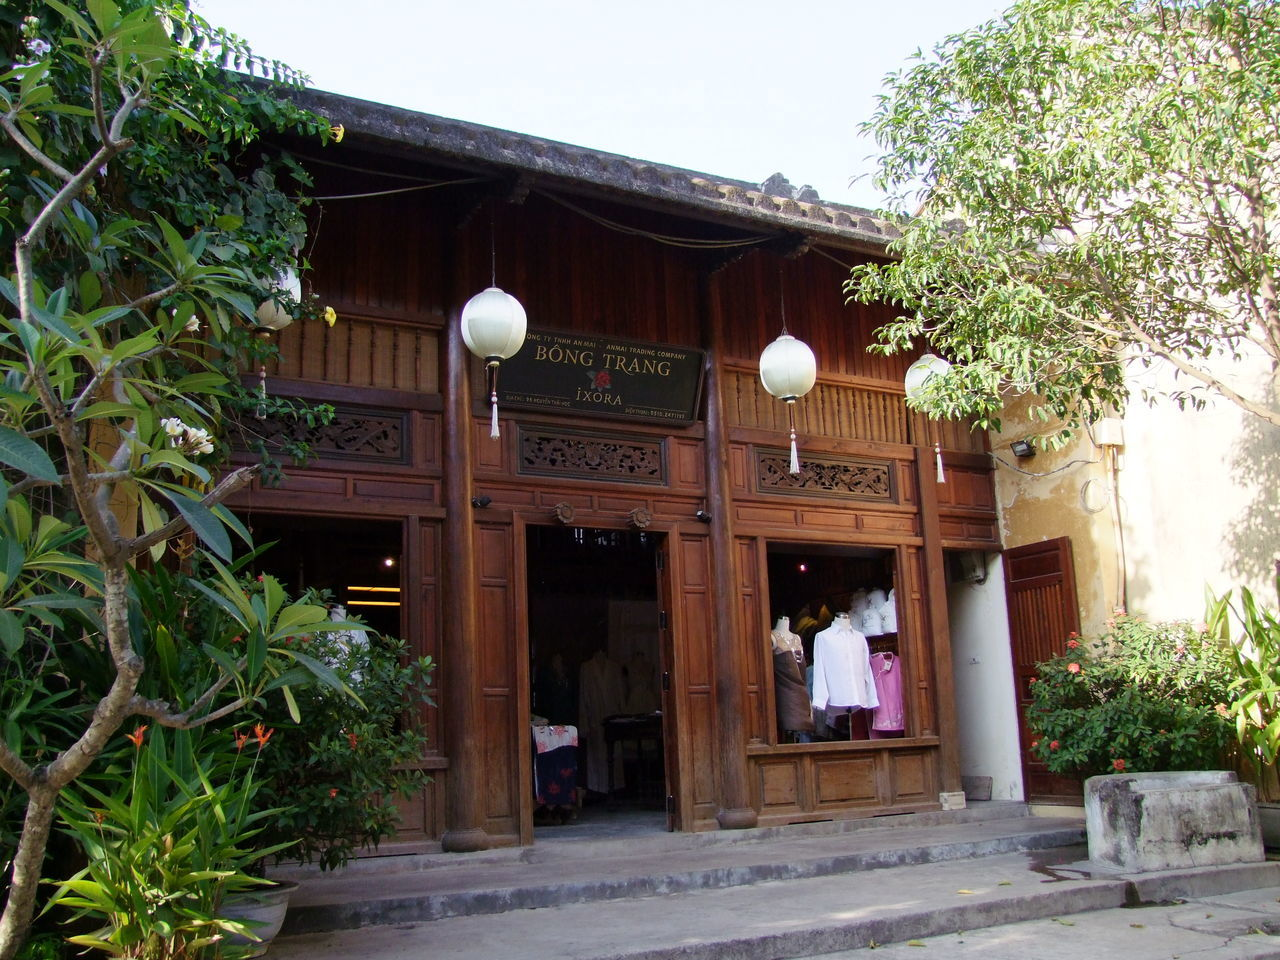 Typical Shop in Hoi An Building Building Exterior Built Structure Clothes Composition Culture Day Door Entrance Exterior Façade Full Frame Hoi An Lanterns Low Angle View No People Outdoor Photography Outdoors Retail  Shop Tourist Attraction  Traditional Trees Vietnam White Clouds